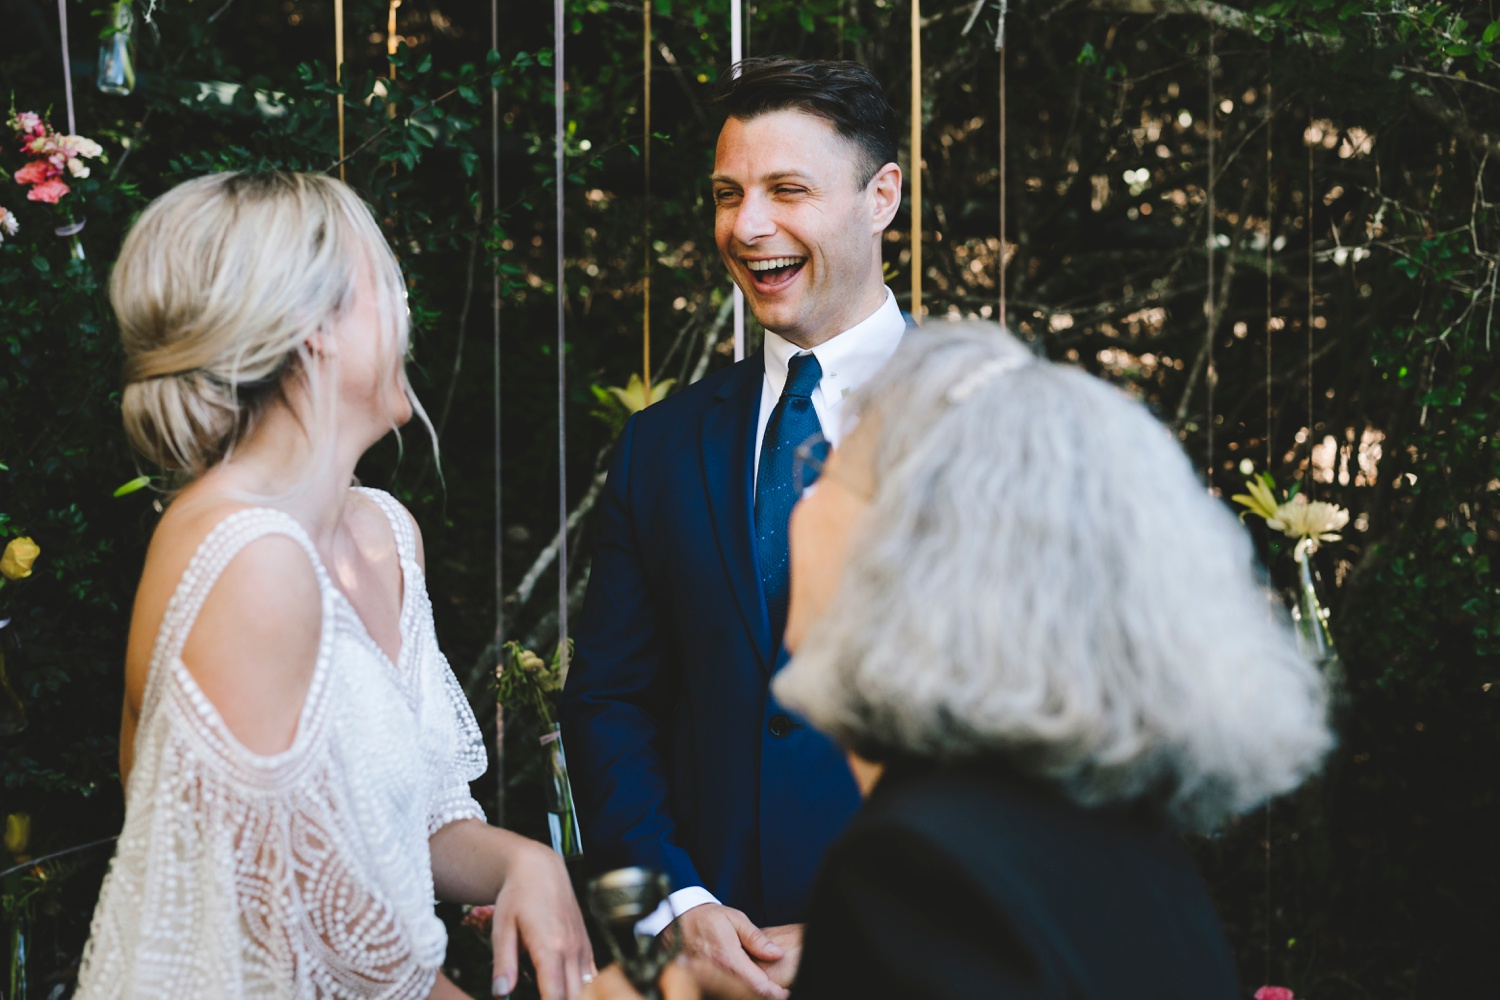 charlie_ray_photography_runaway_romance_elopement_emily_moon_plett_simple_boho_wedding_south_africa_bohemium_0056.jpg